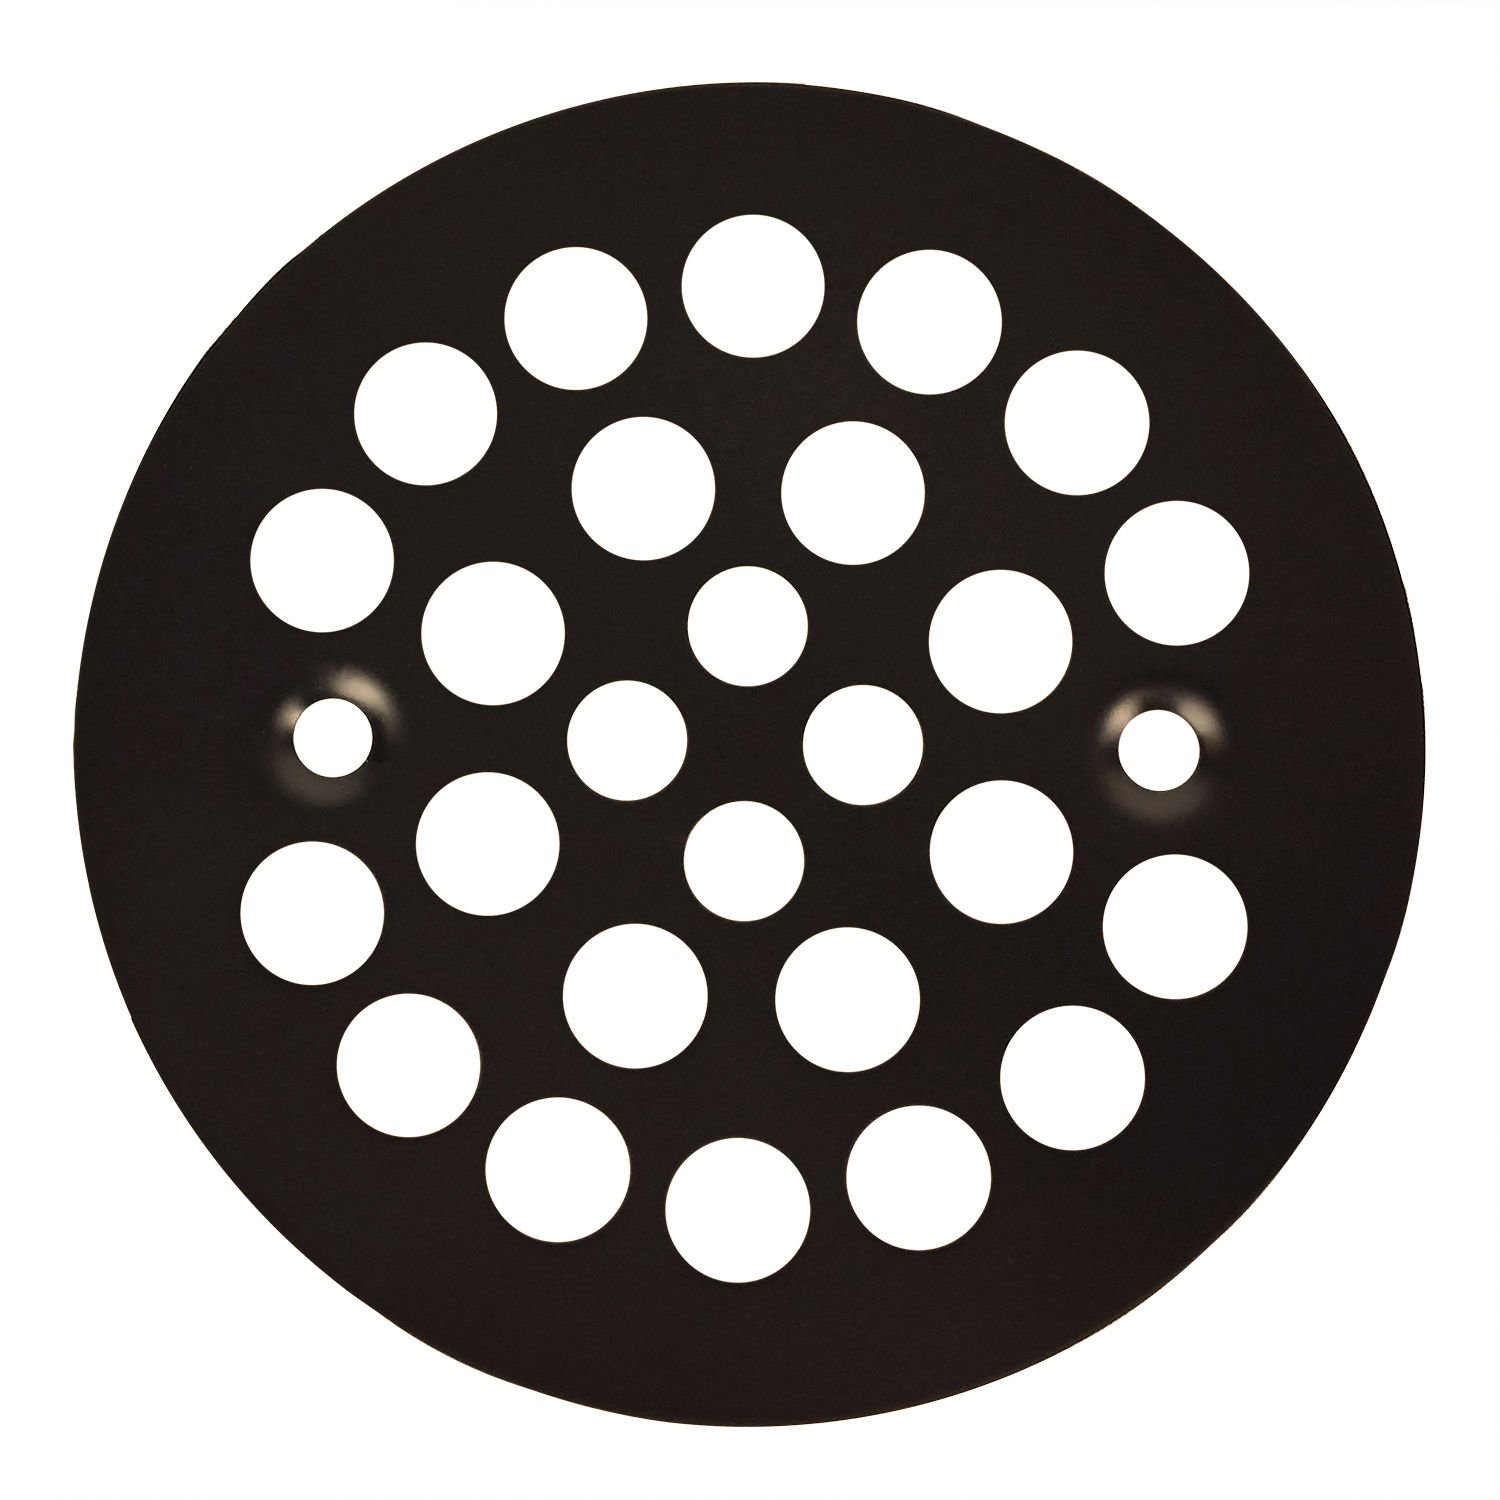 Oil Rubbed Bronze Round Shower Grate Drain 4-1/4'' Replacement Cover